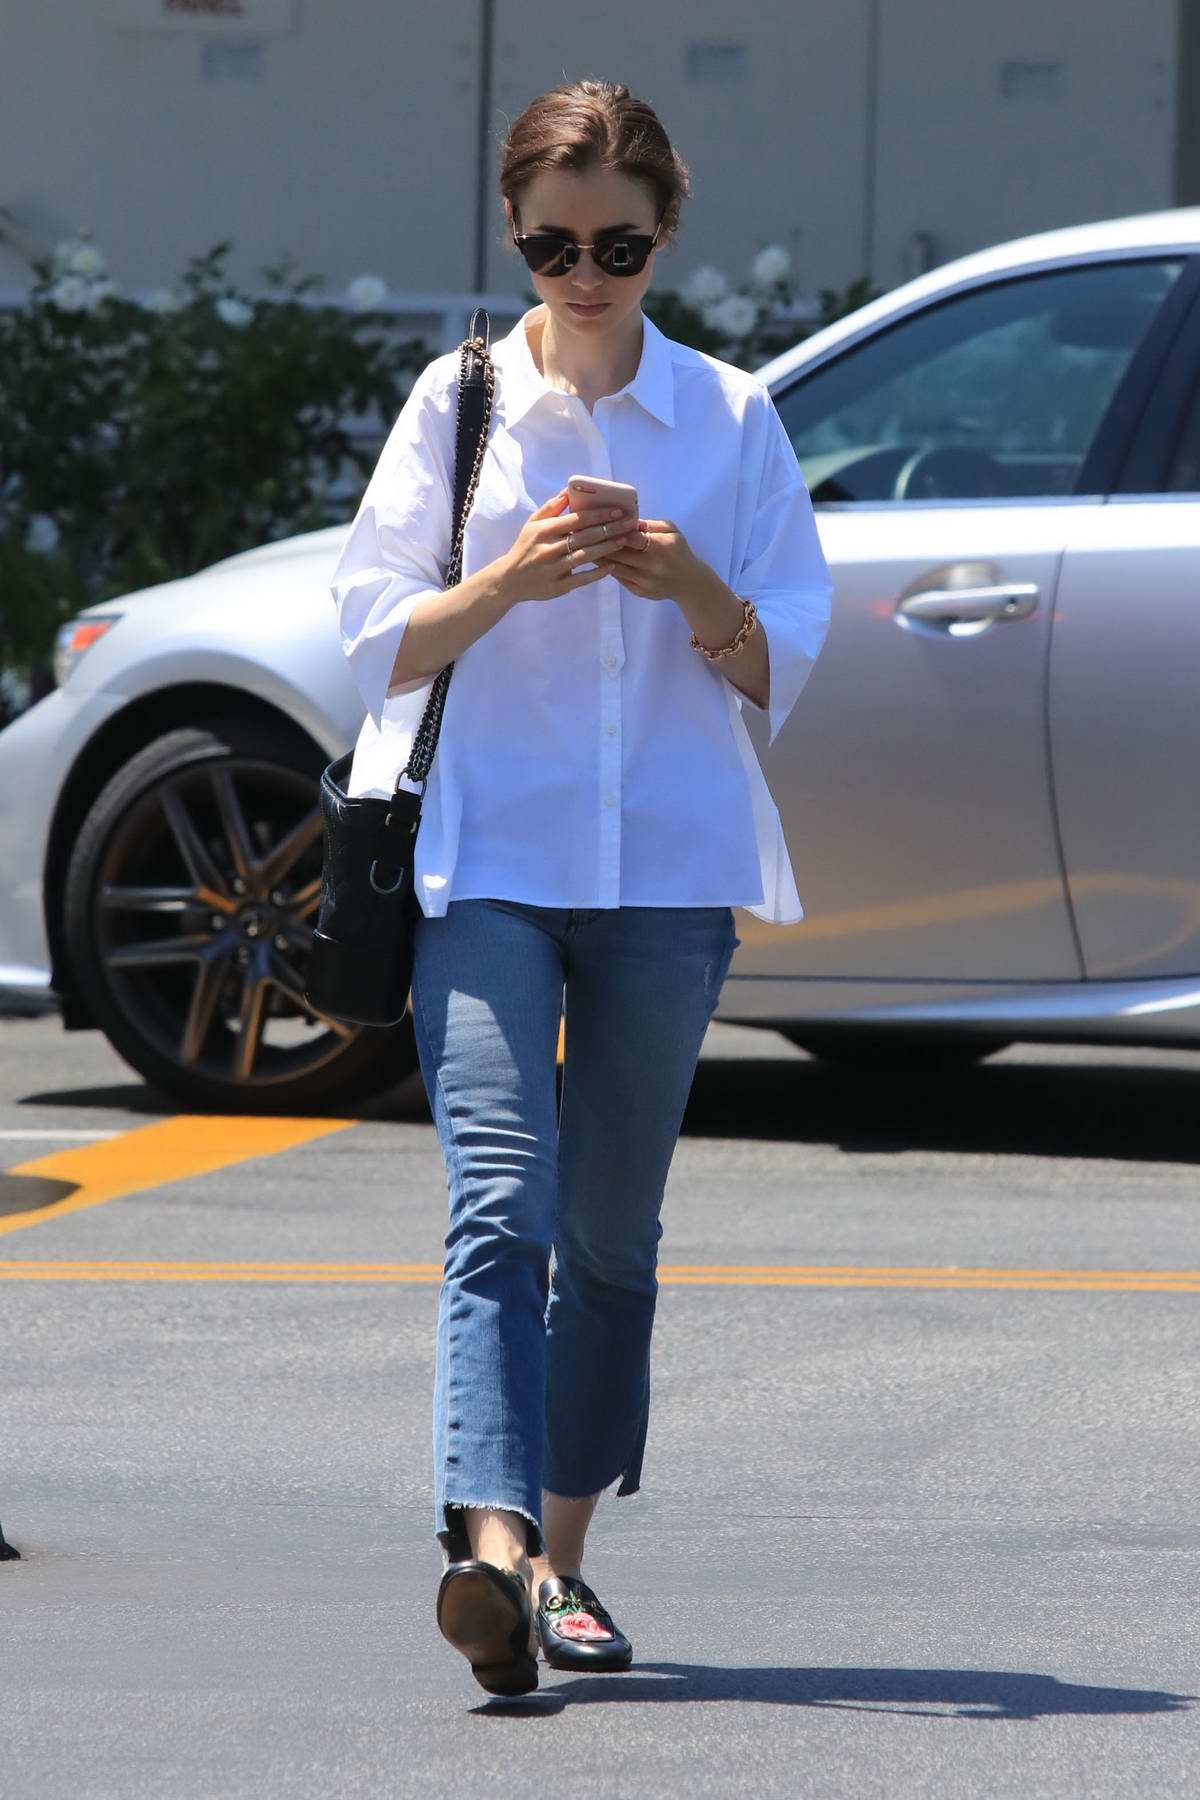 Lily Collins running errands in casual white shirt and jeans in Los Angeles